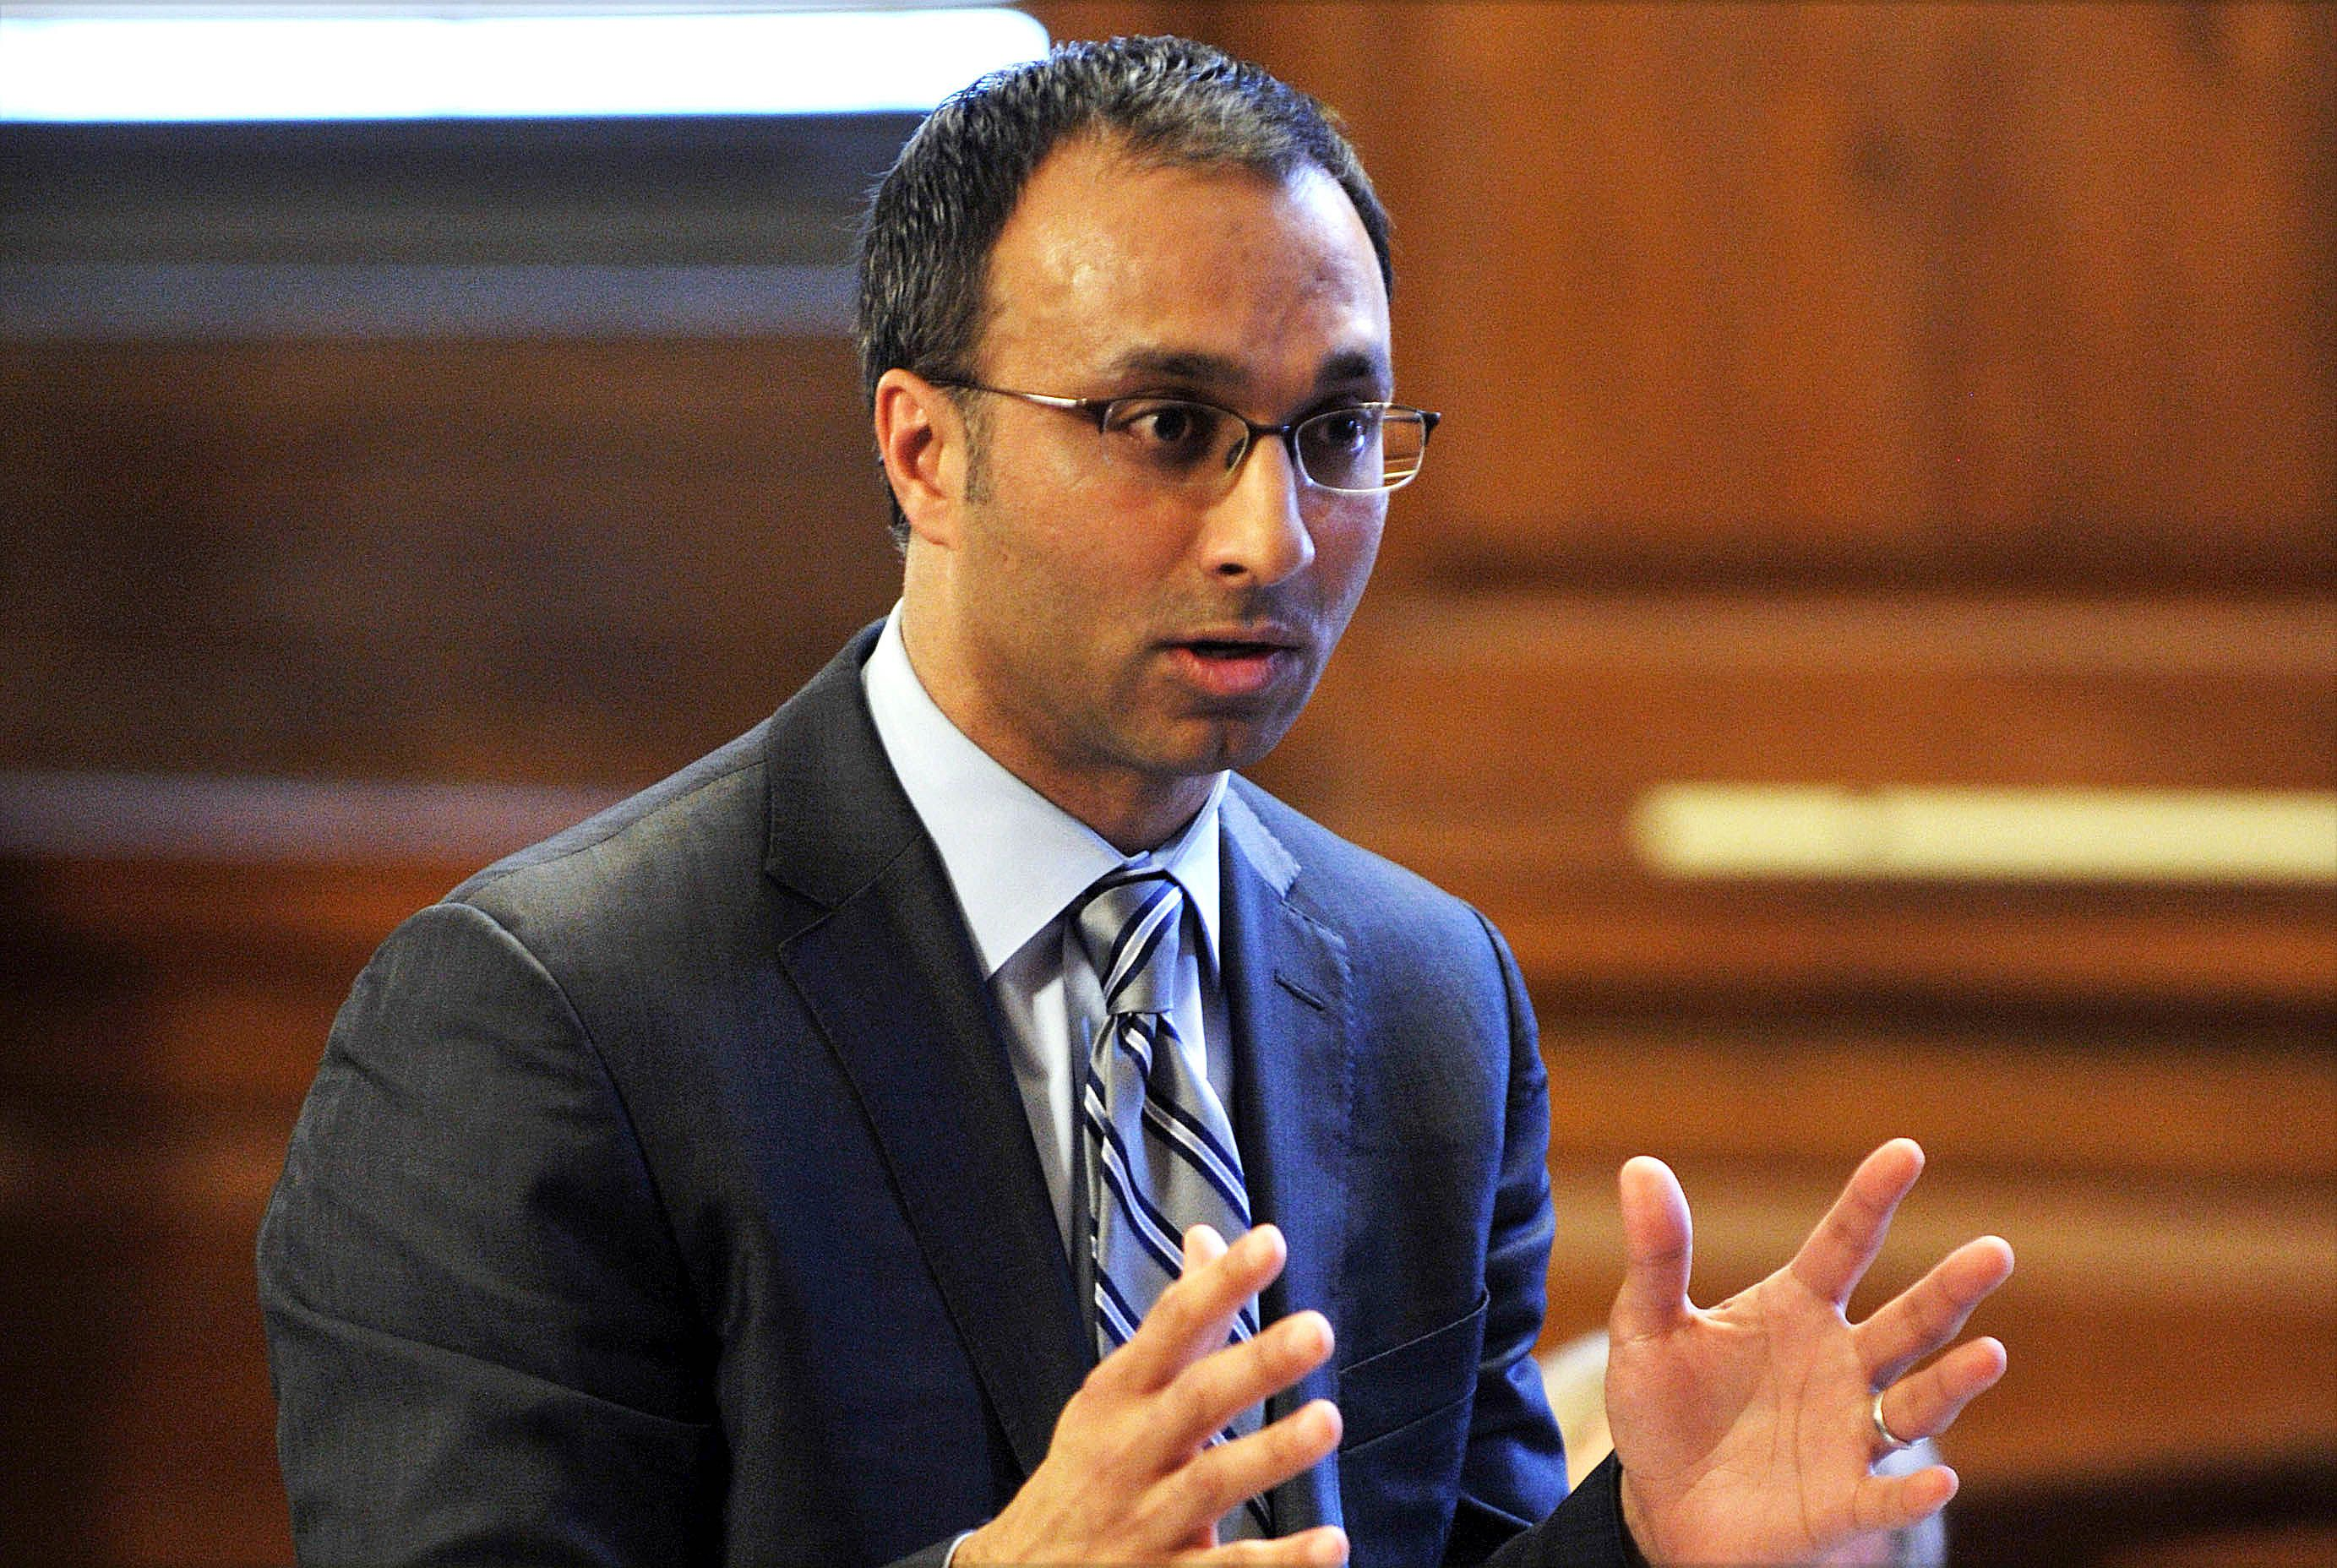 Judge Amit Mehta Just Threw Trump's Lawyers Out of Court Like a Bar Bouncer Would a Drunk